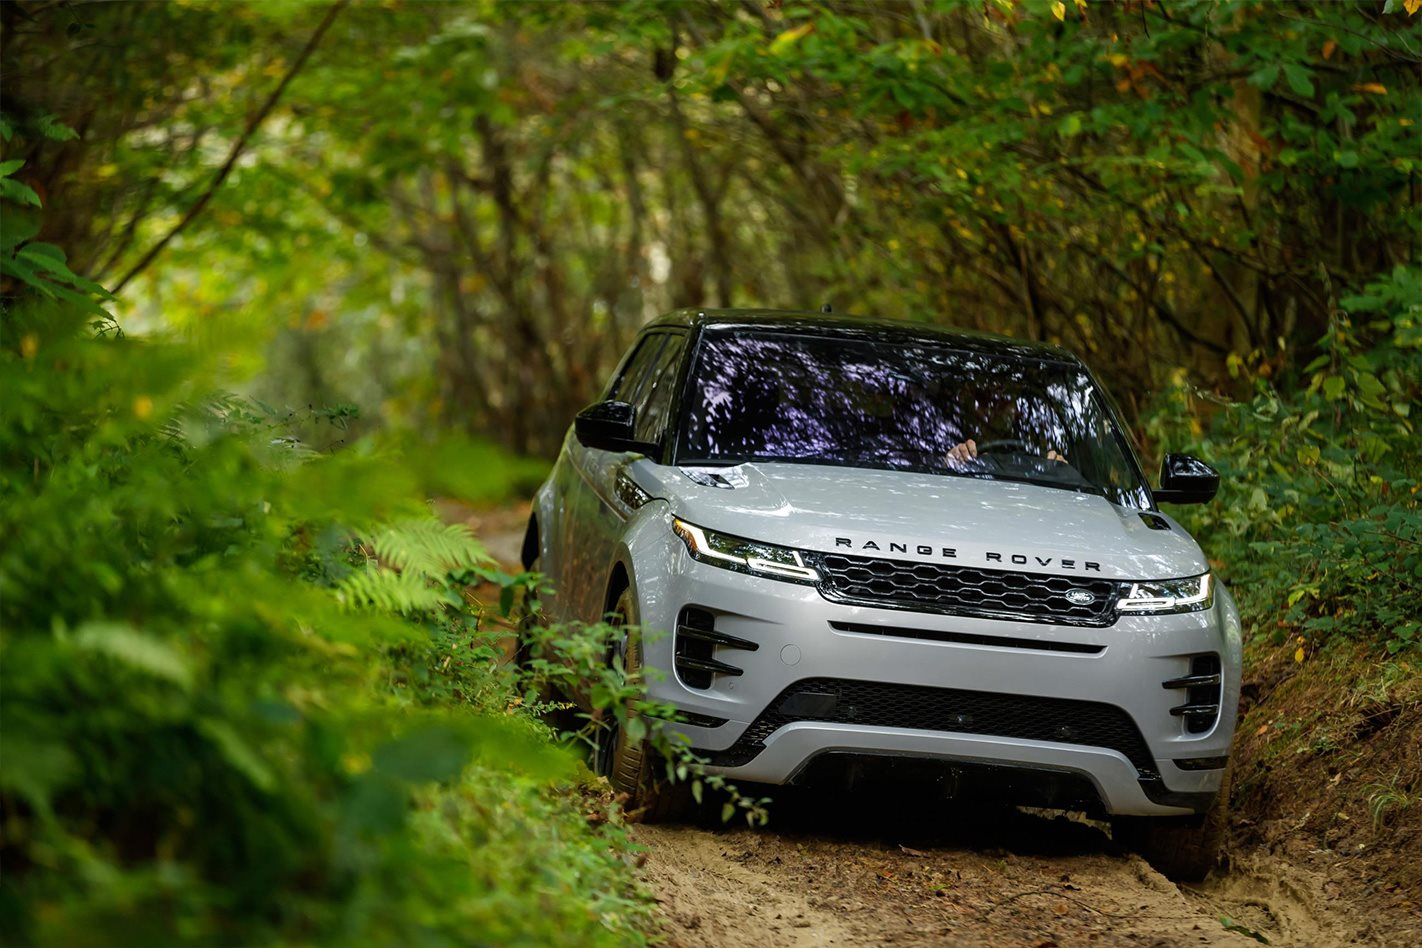 2019 Range Rover Evoque price and features revealed